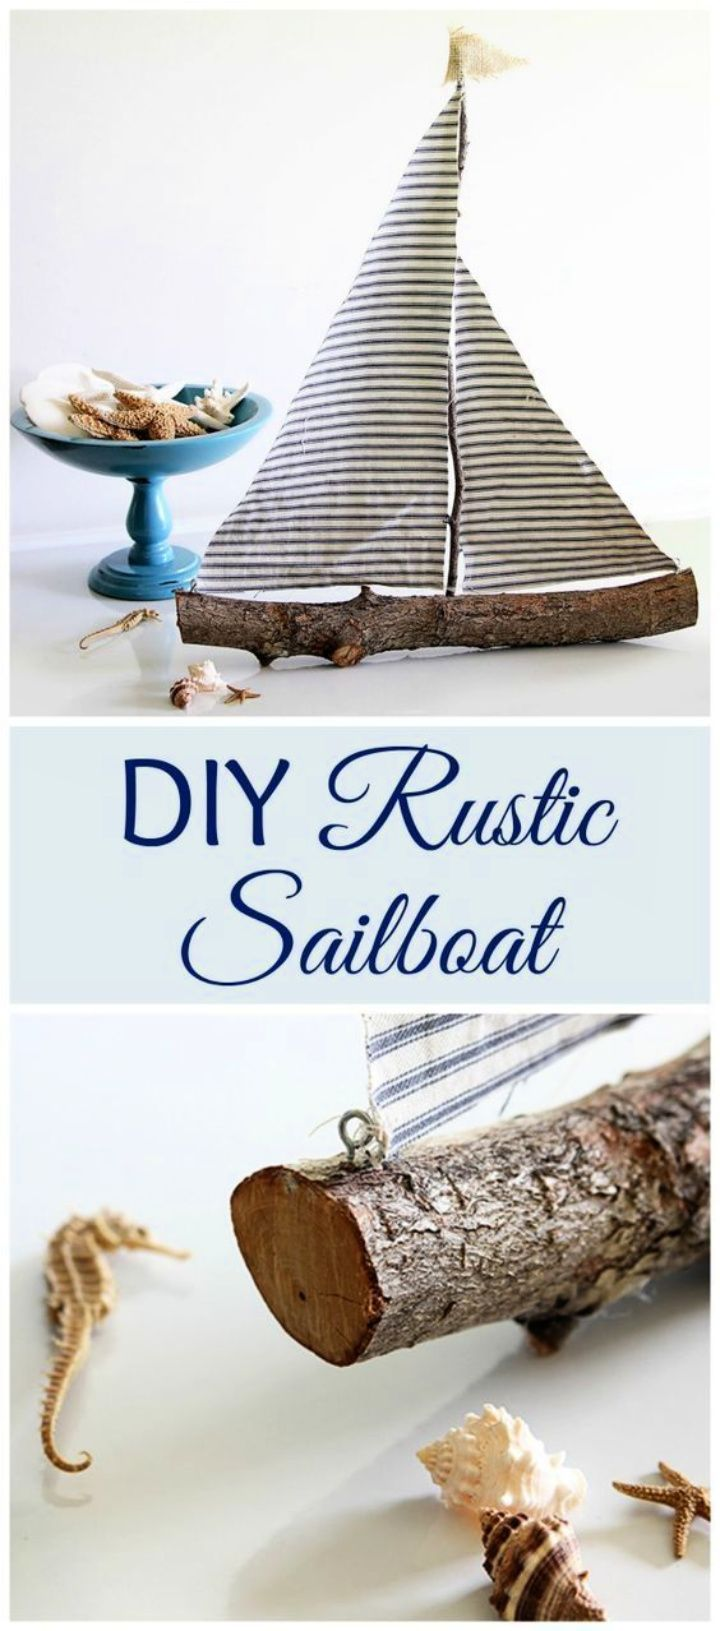 DIY Rustic Sailboat Tutorial